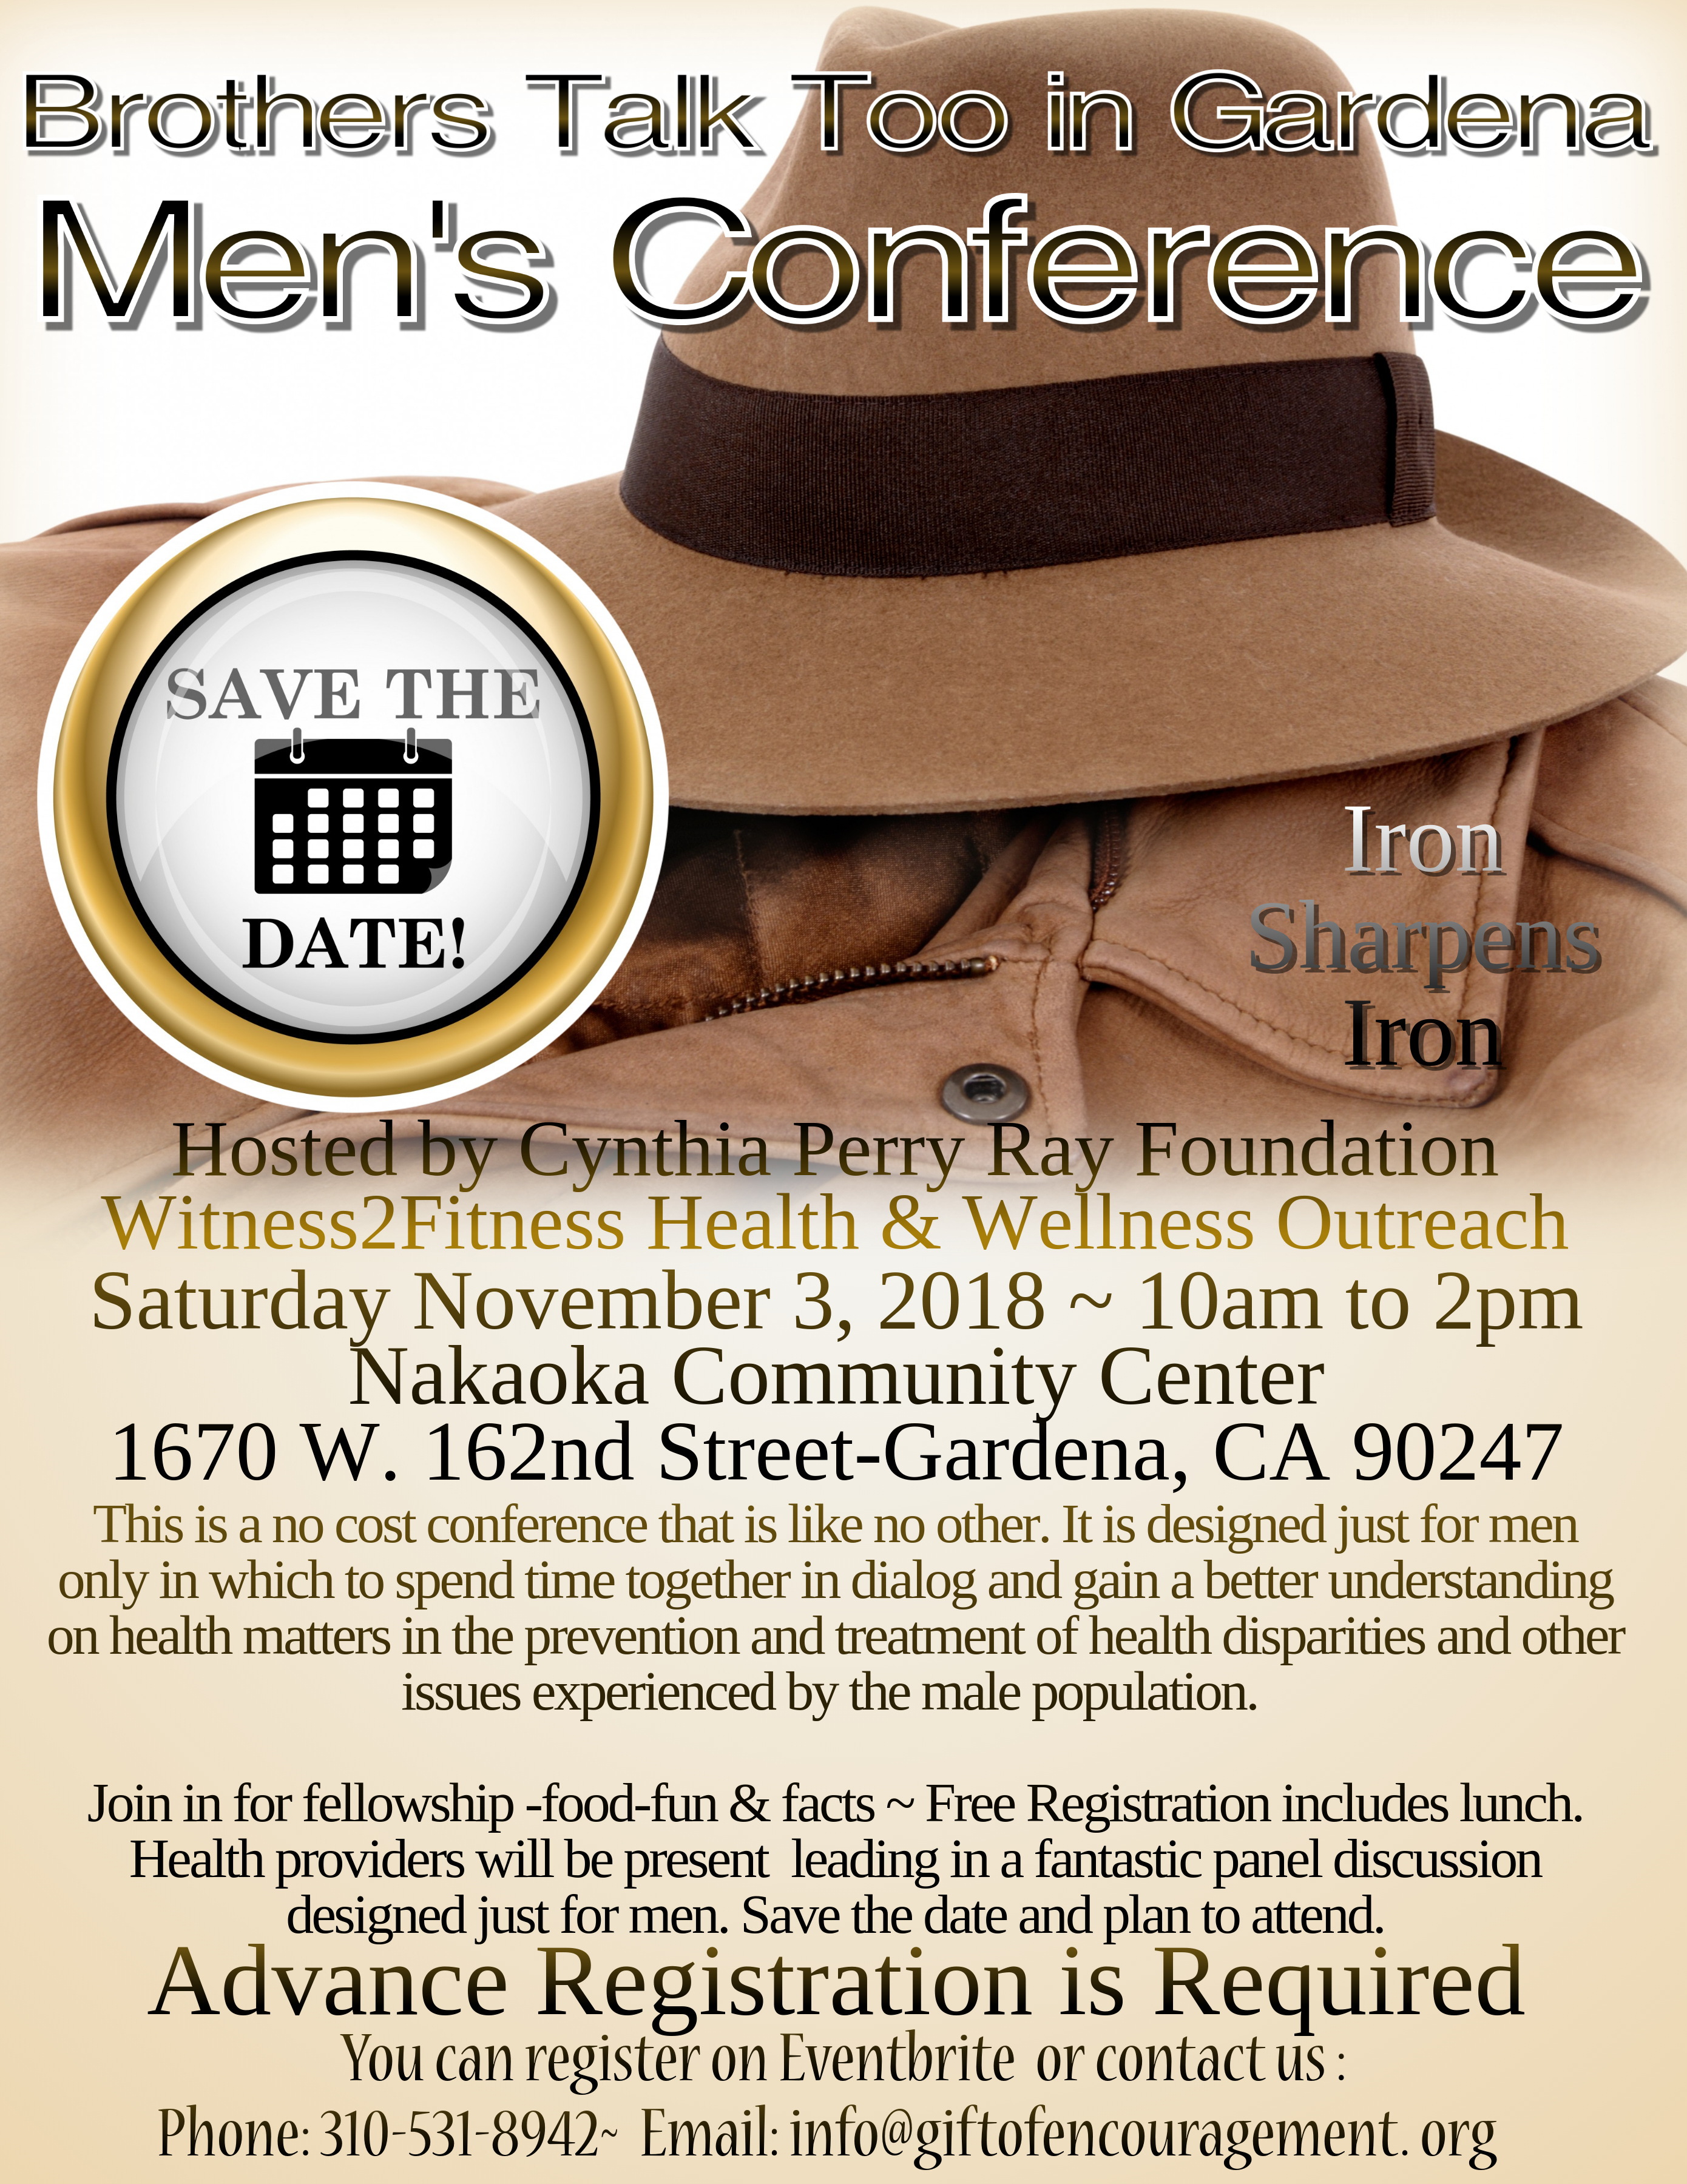 Gardena_Men's_Conference_with_address-_Save_the_Date.jpg